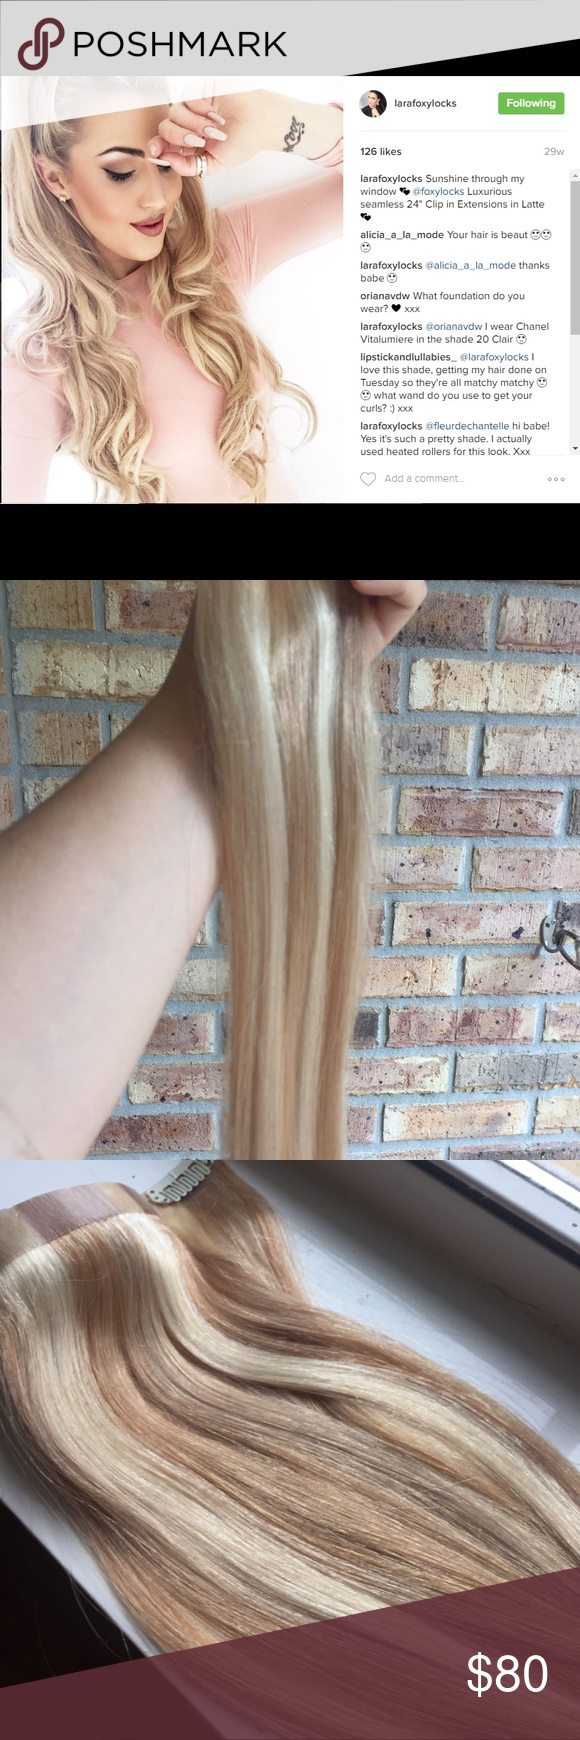 Foxy Locks Latte Blonde Seamless 18 Clip Ins Blonde Color Remy